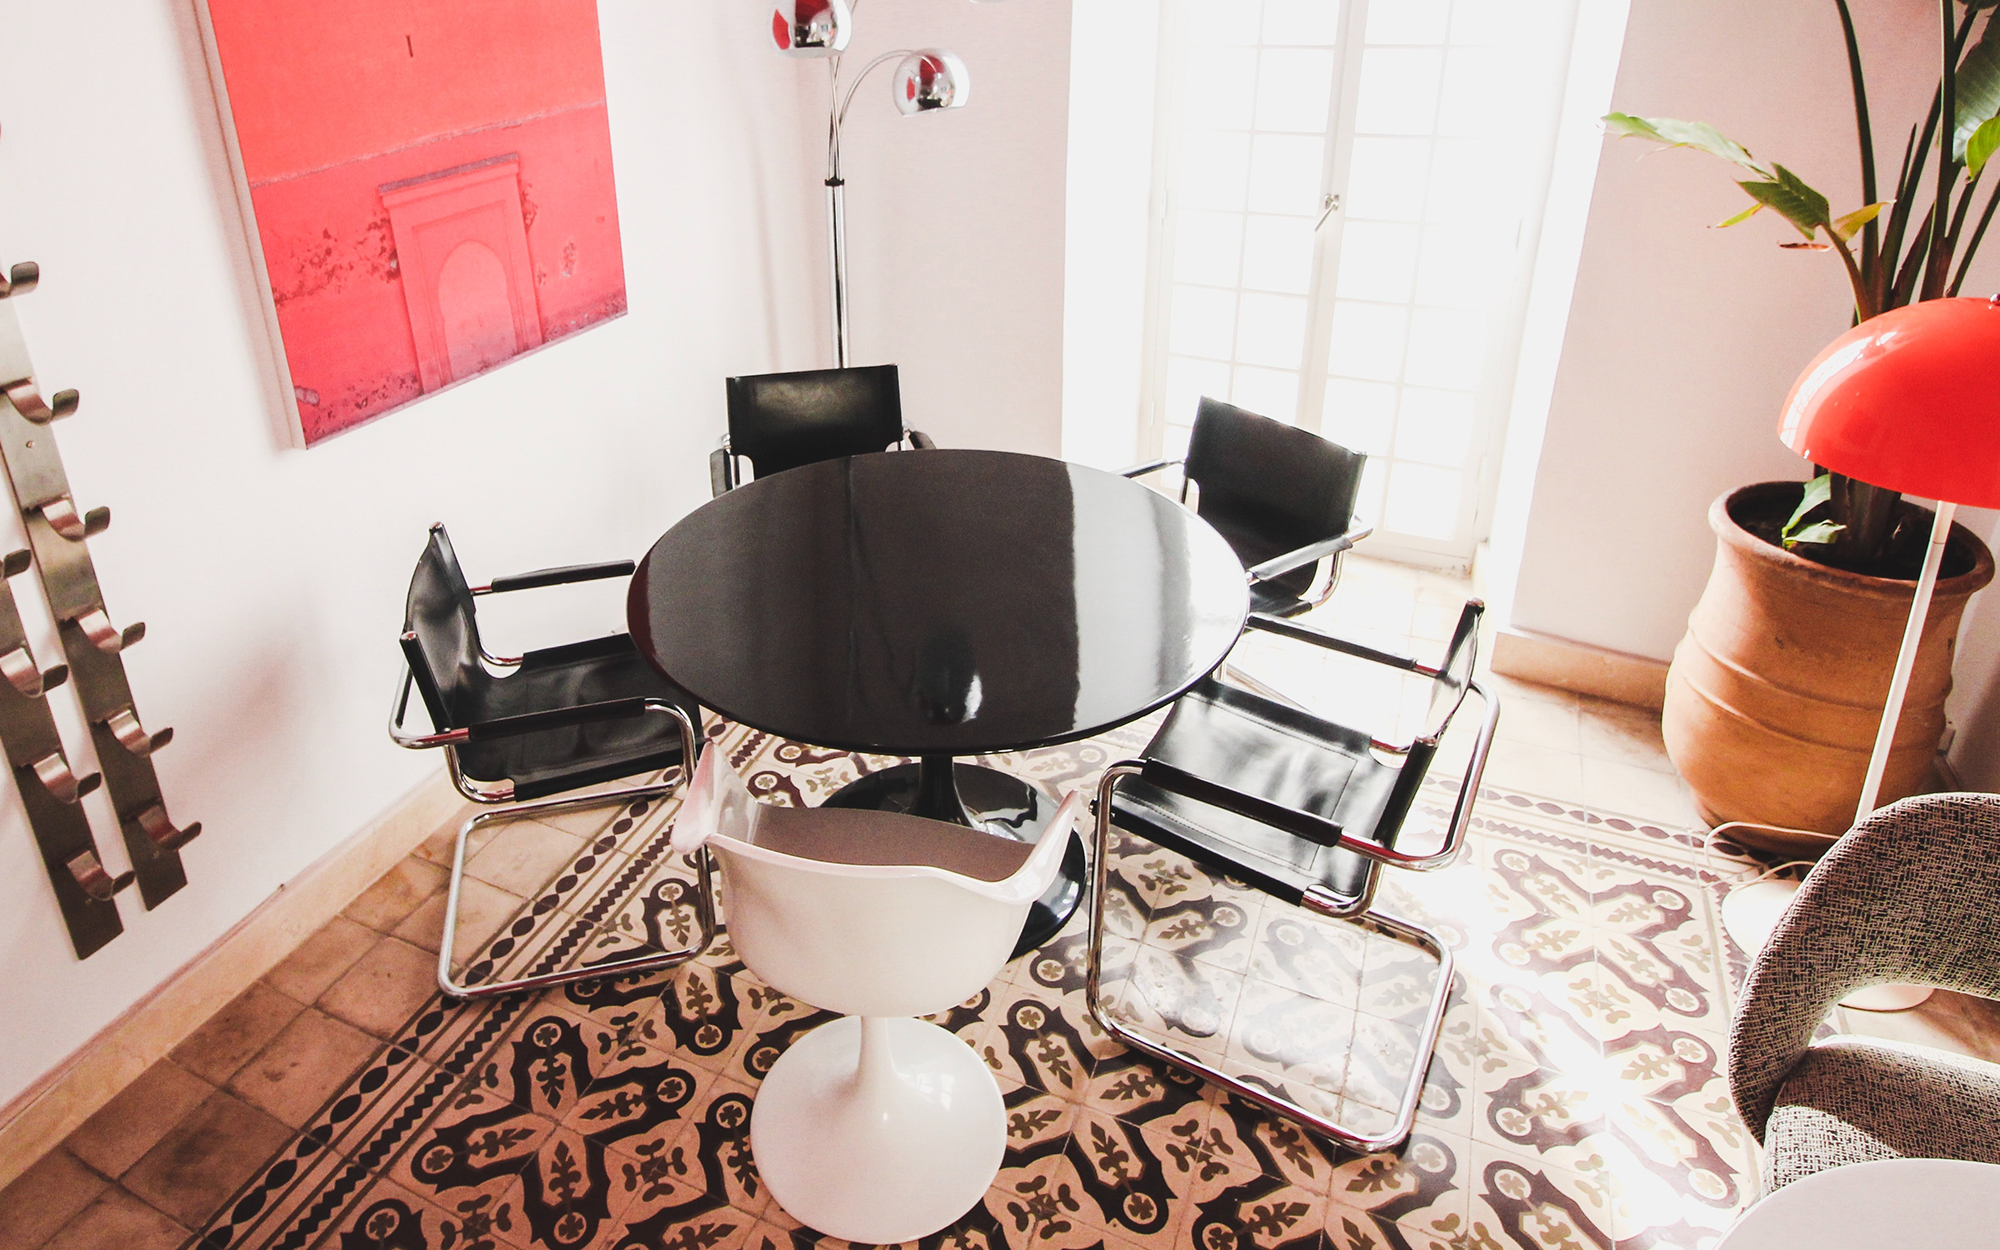 Space Age Inspired Interior With Saarinen Tulip Table